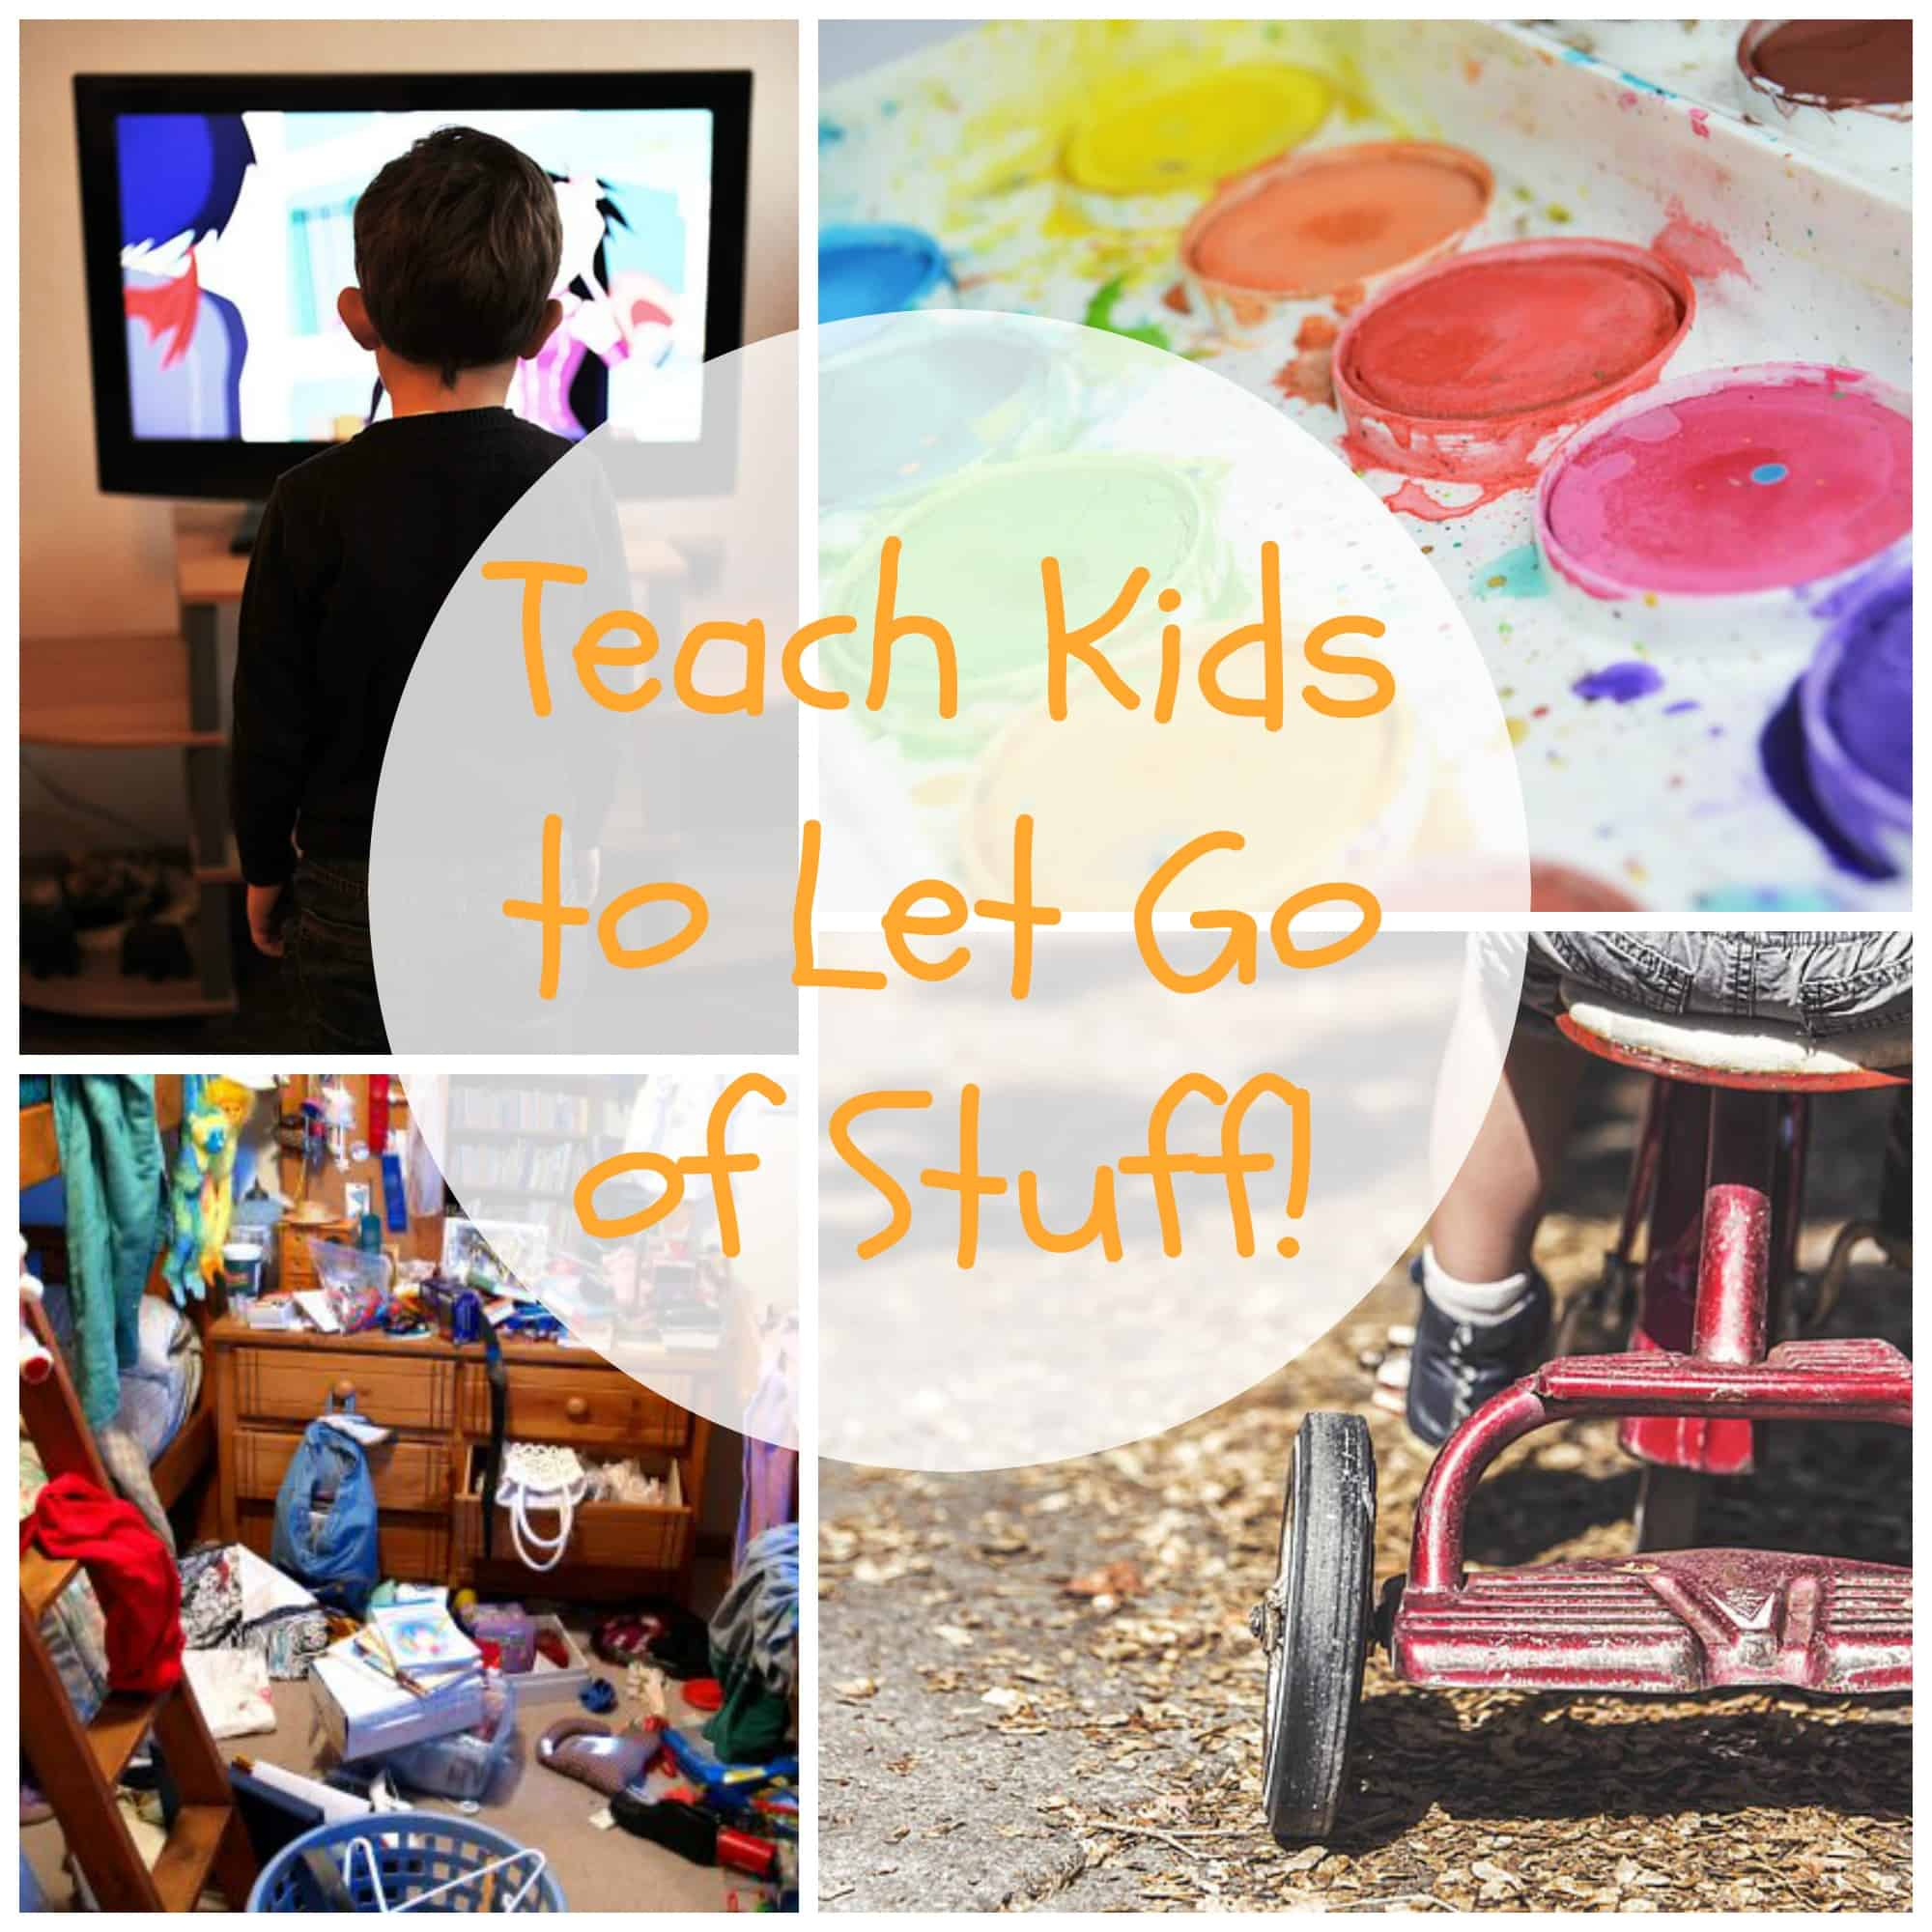 Parenting - Teaching kids to let go of stuff